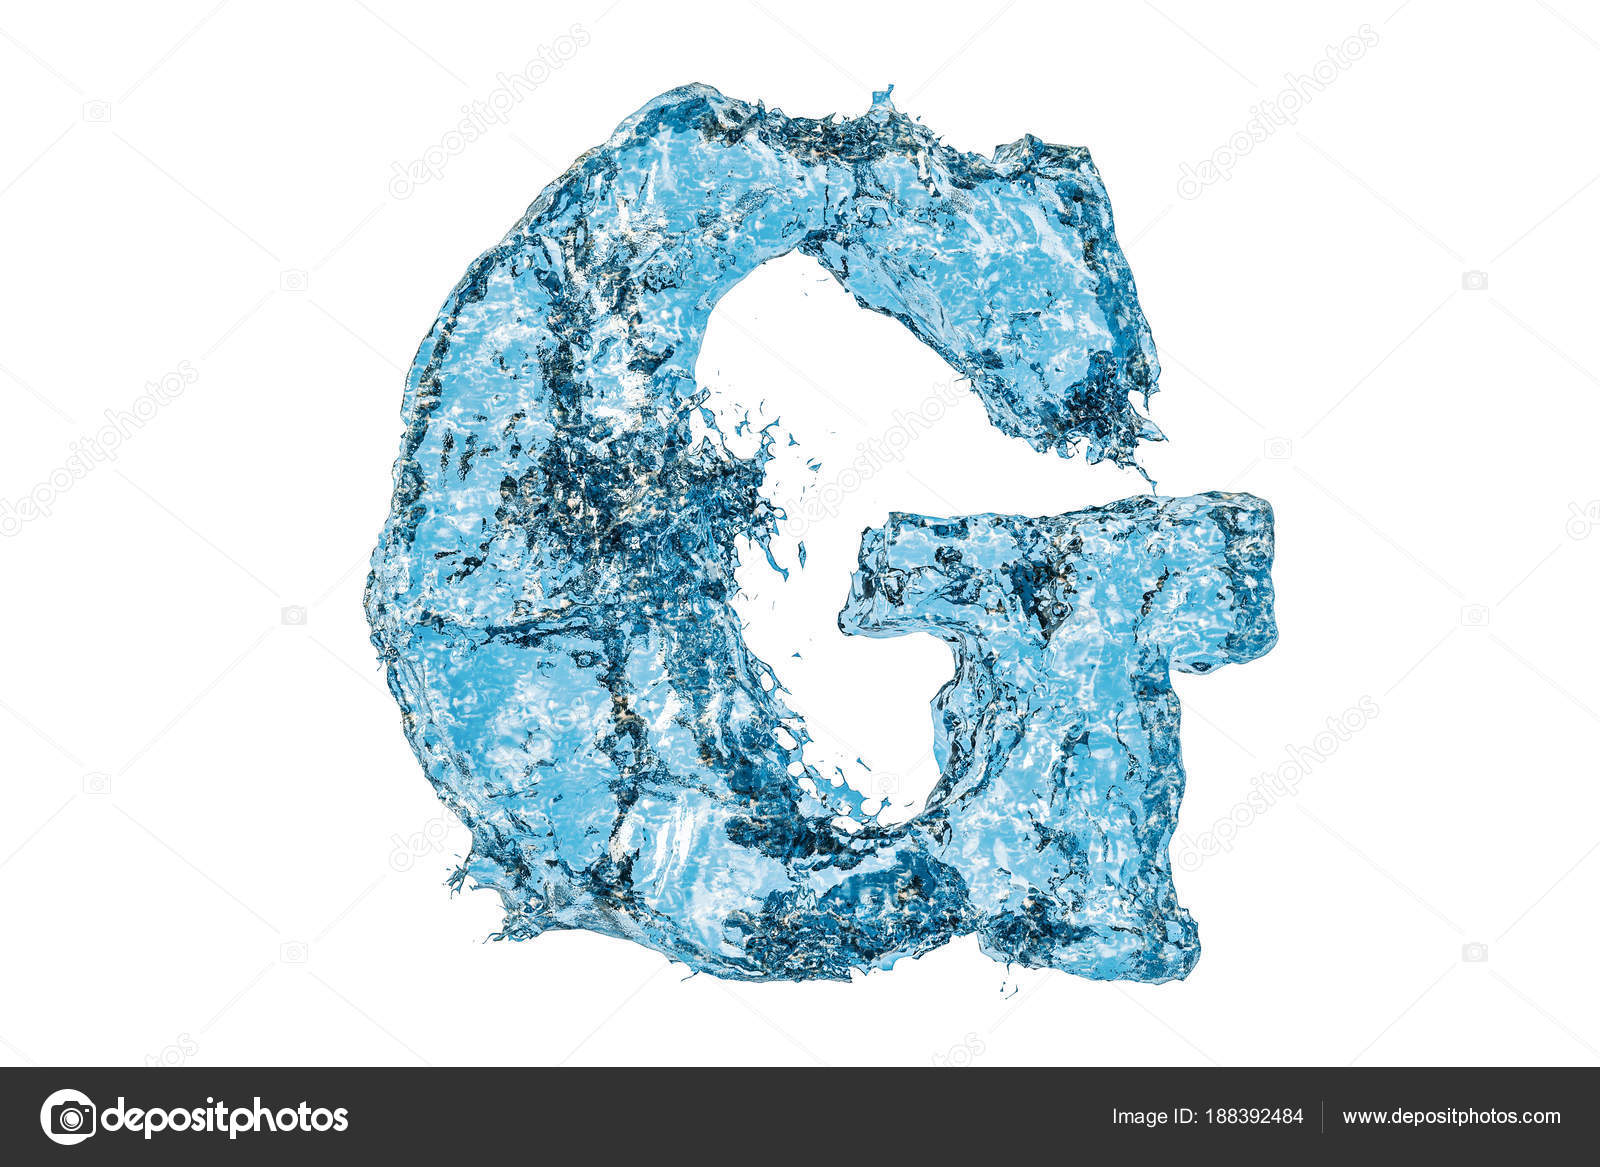 Water letter g 3d rendering stock photo alexlmx 188392484 water letter g 3d rendering stock photo thecheapjerseys Images